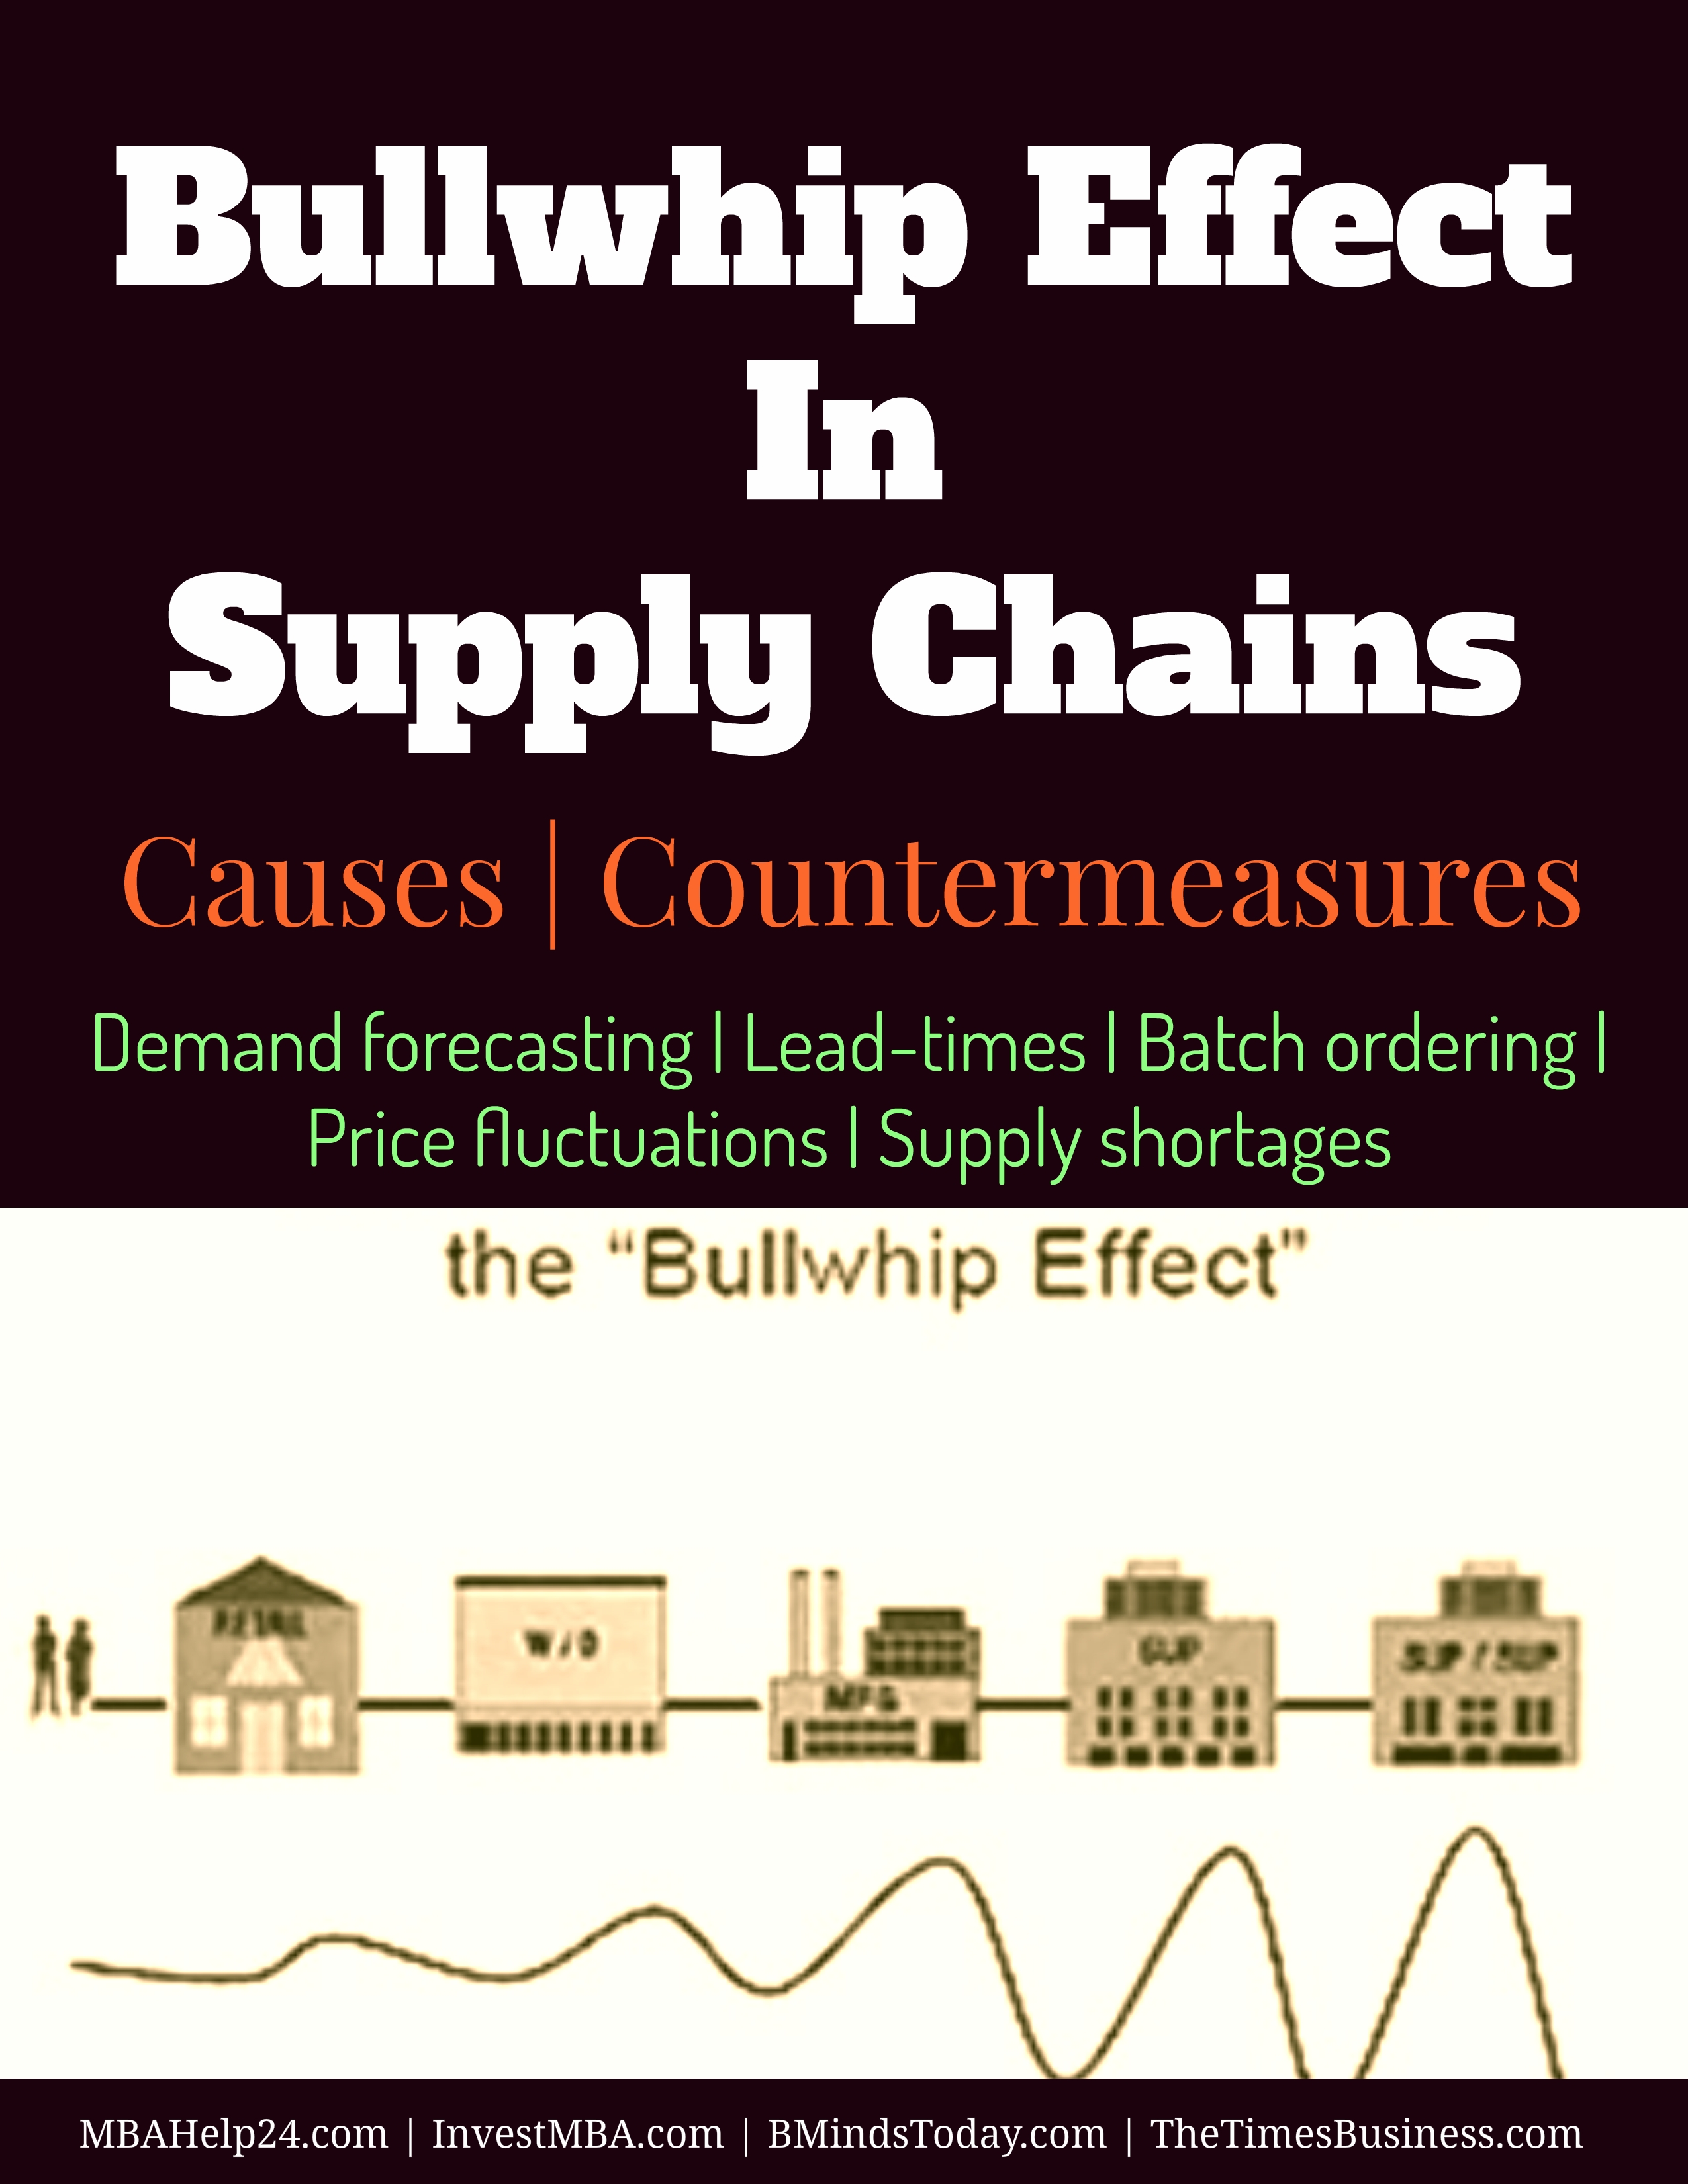 The Bullwhip Effect In Supply Chains   Causes   Countermeasures   Demand forecasting   Lead-times   Batch ordering   Price fluctuations   Supply shortages  Bullwhip Effect The Bullwhip Effect In Supply Chains   Causes   Countermeasures Bullwhip Effect In Supply Chains Causes Countermeasures